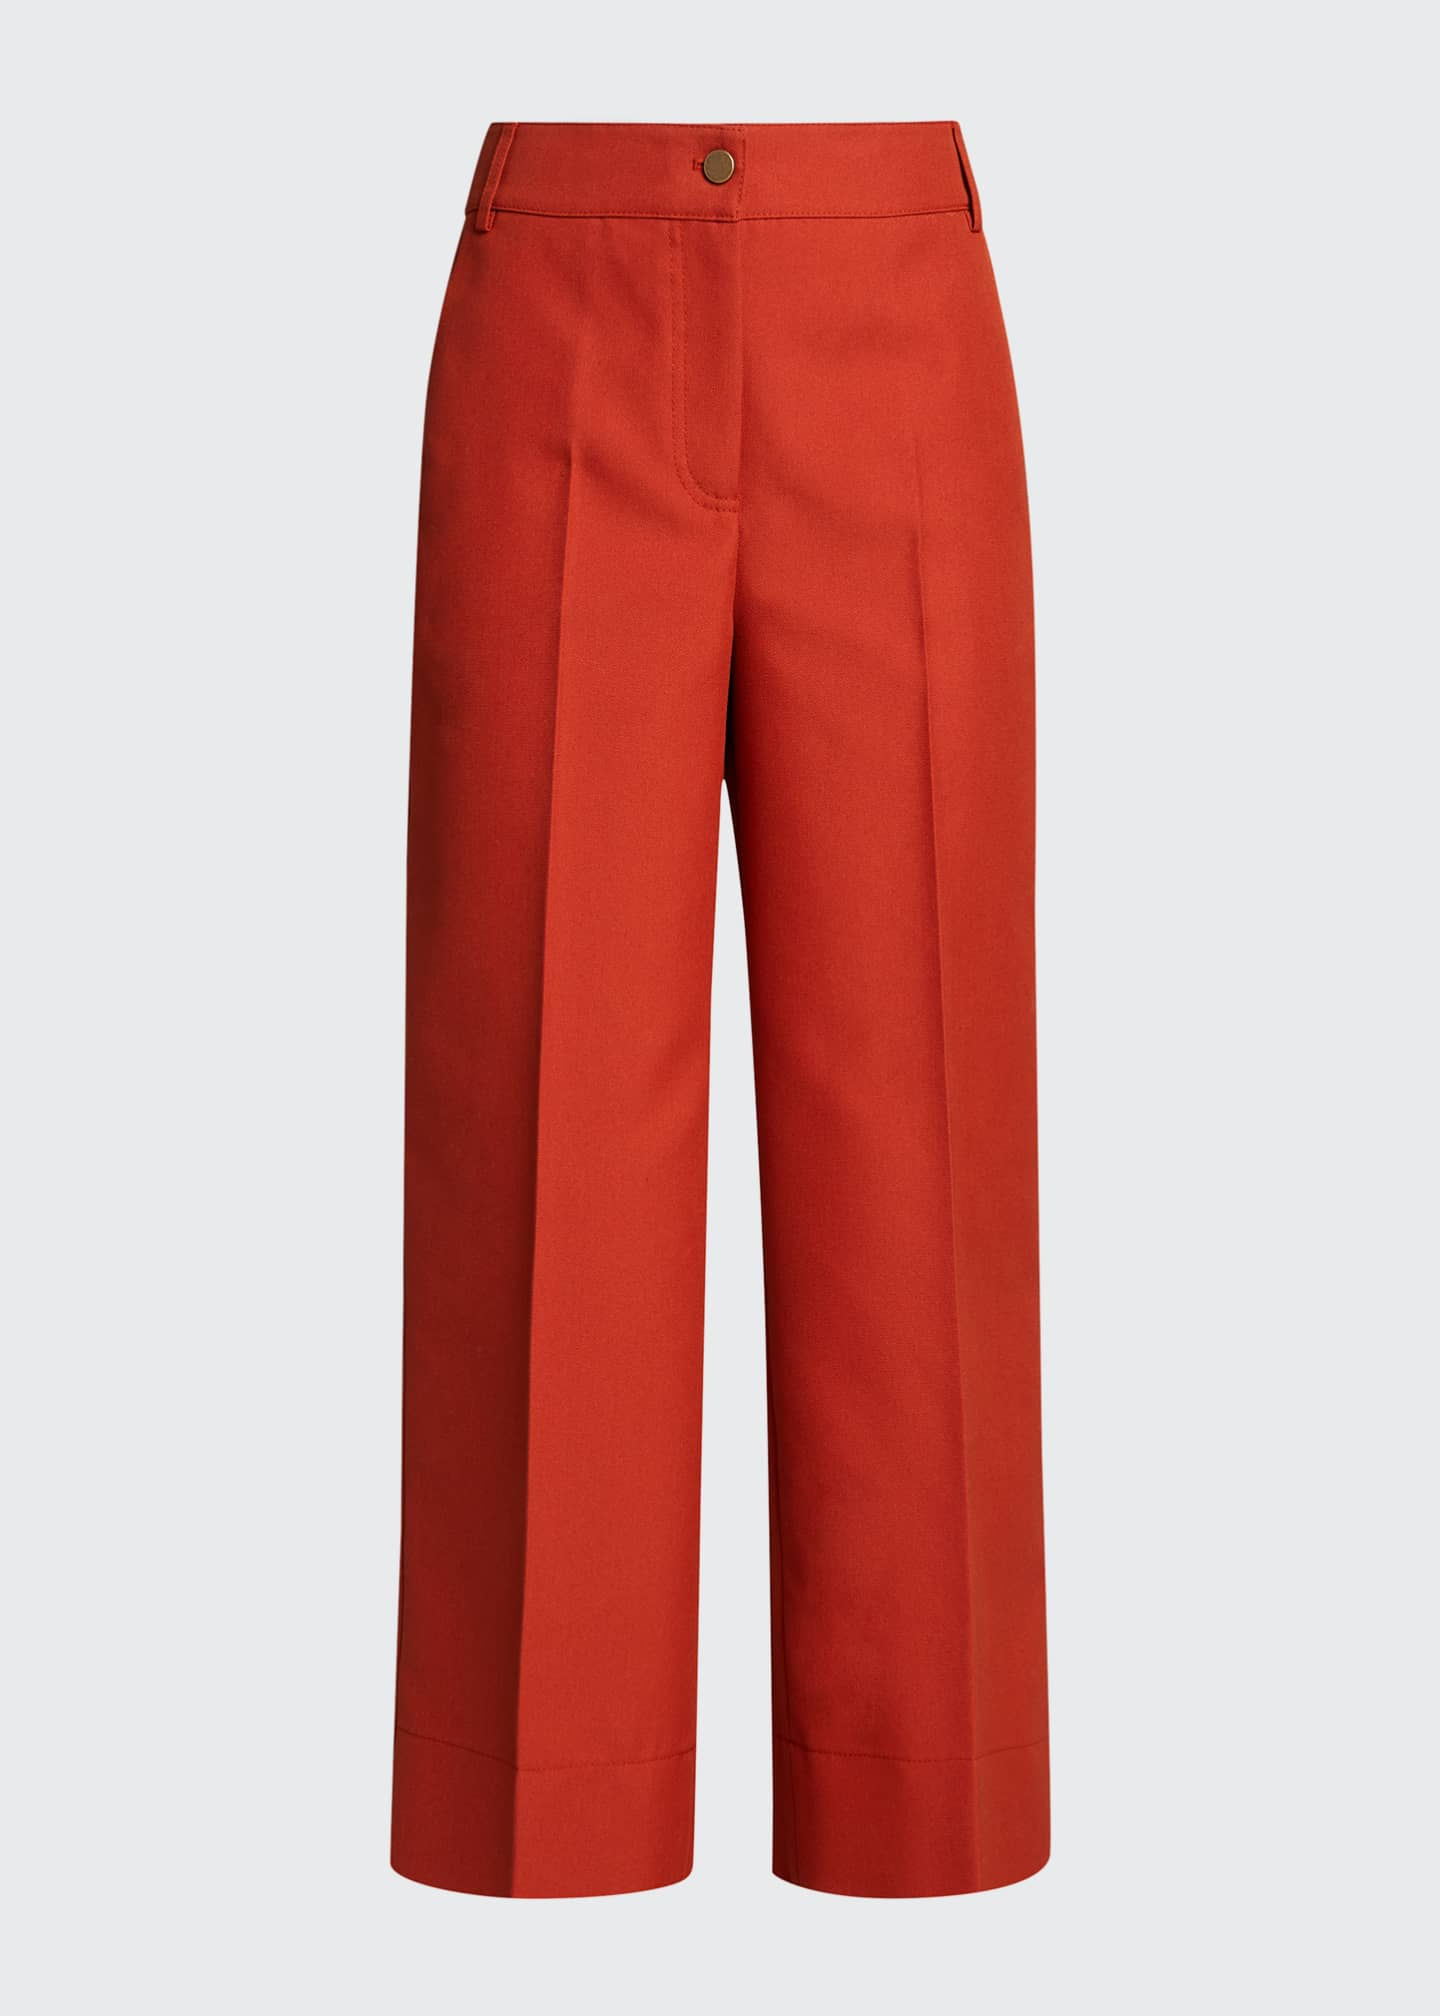 Image 5 of 5: Chiara Mercerized Cotton Culotte Pants